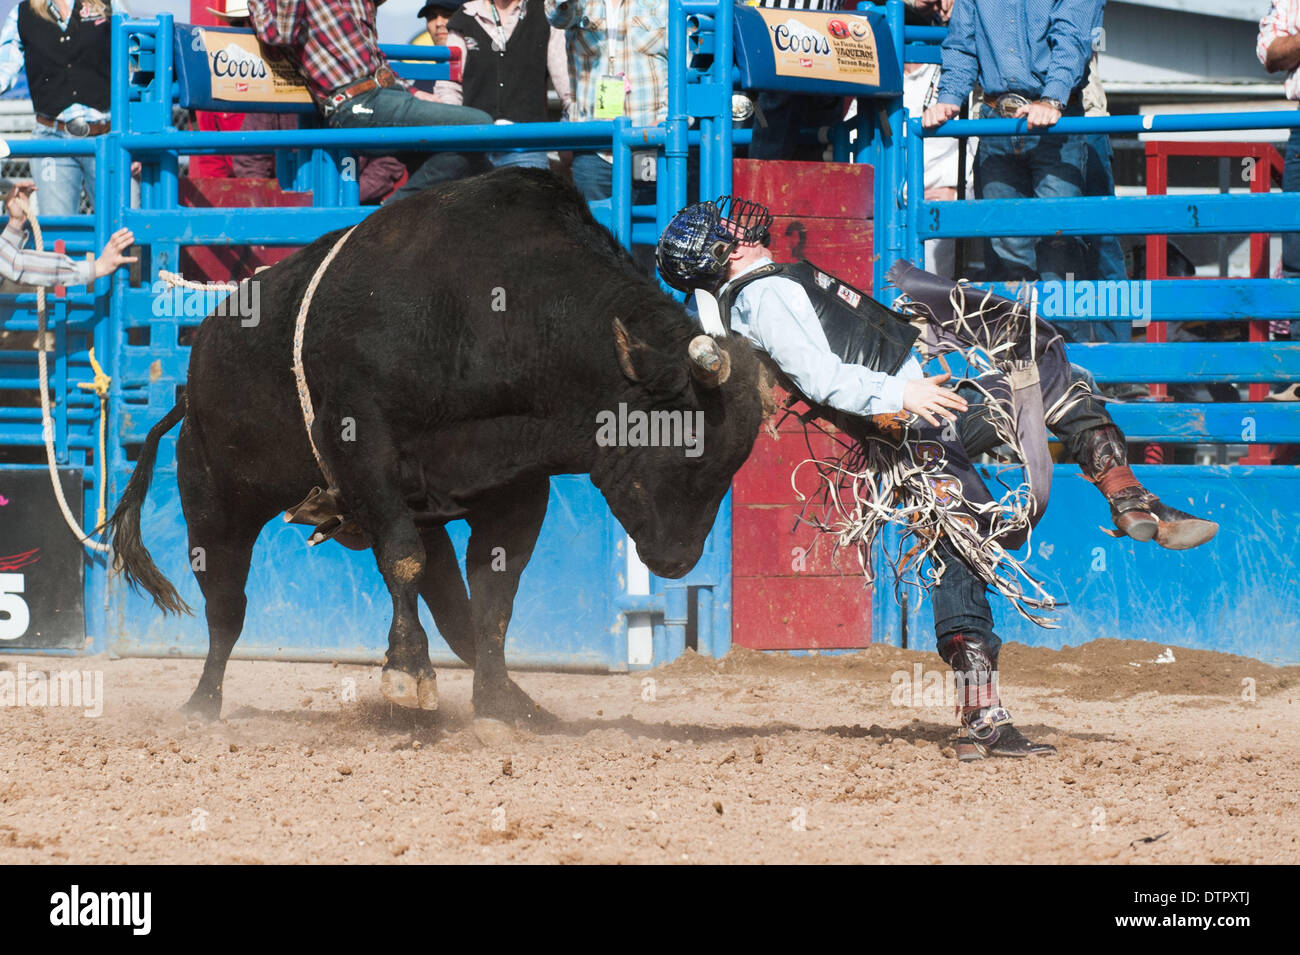 Tucson, Arizona, USA. 22nd Feb, 2014. WACE HOLMES gets gored in the back by a bull named ''Price Buster'' during Stock Photo